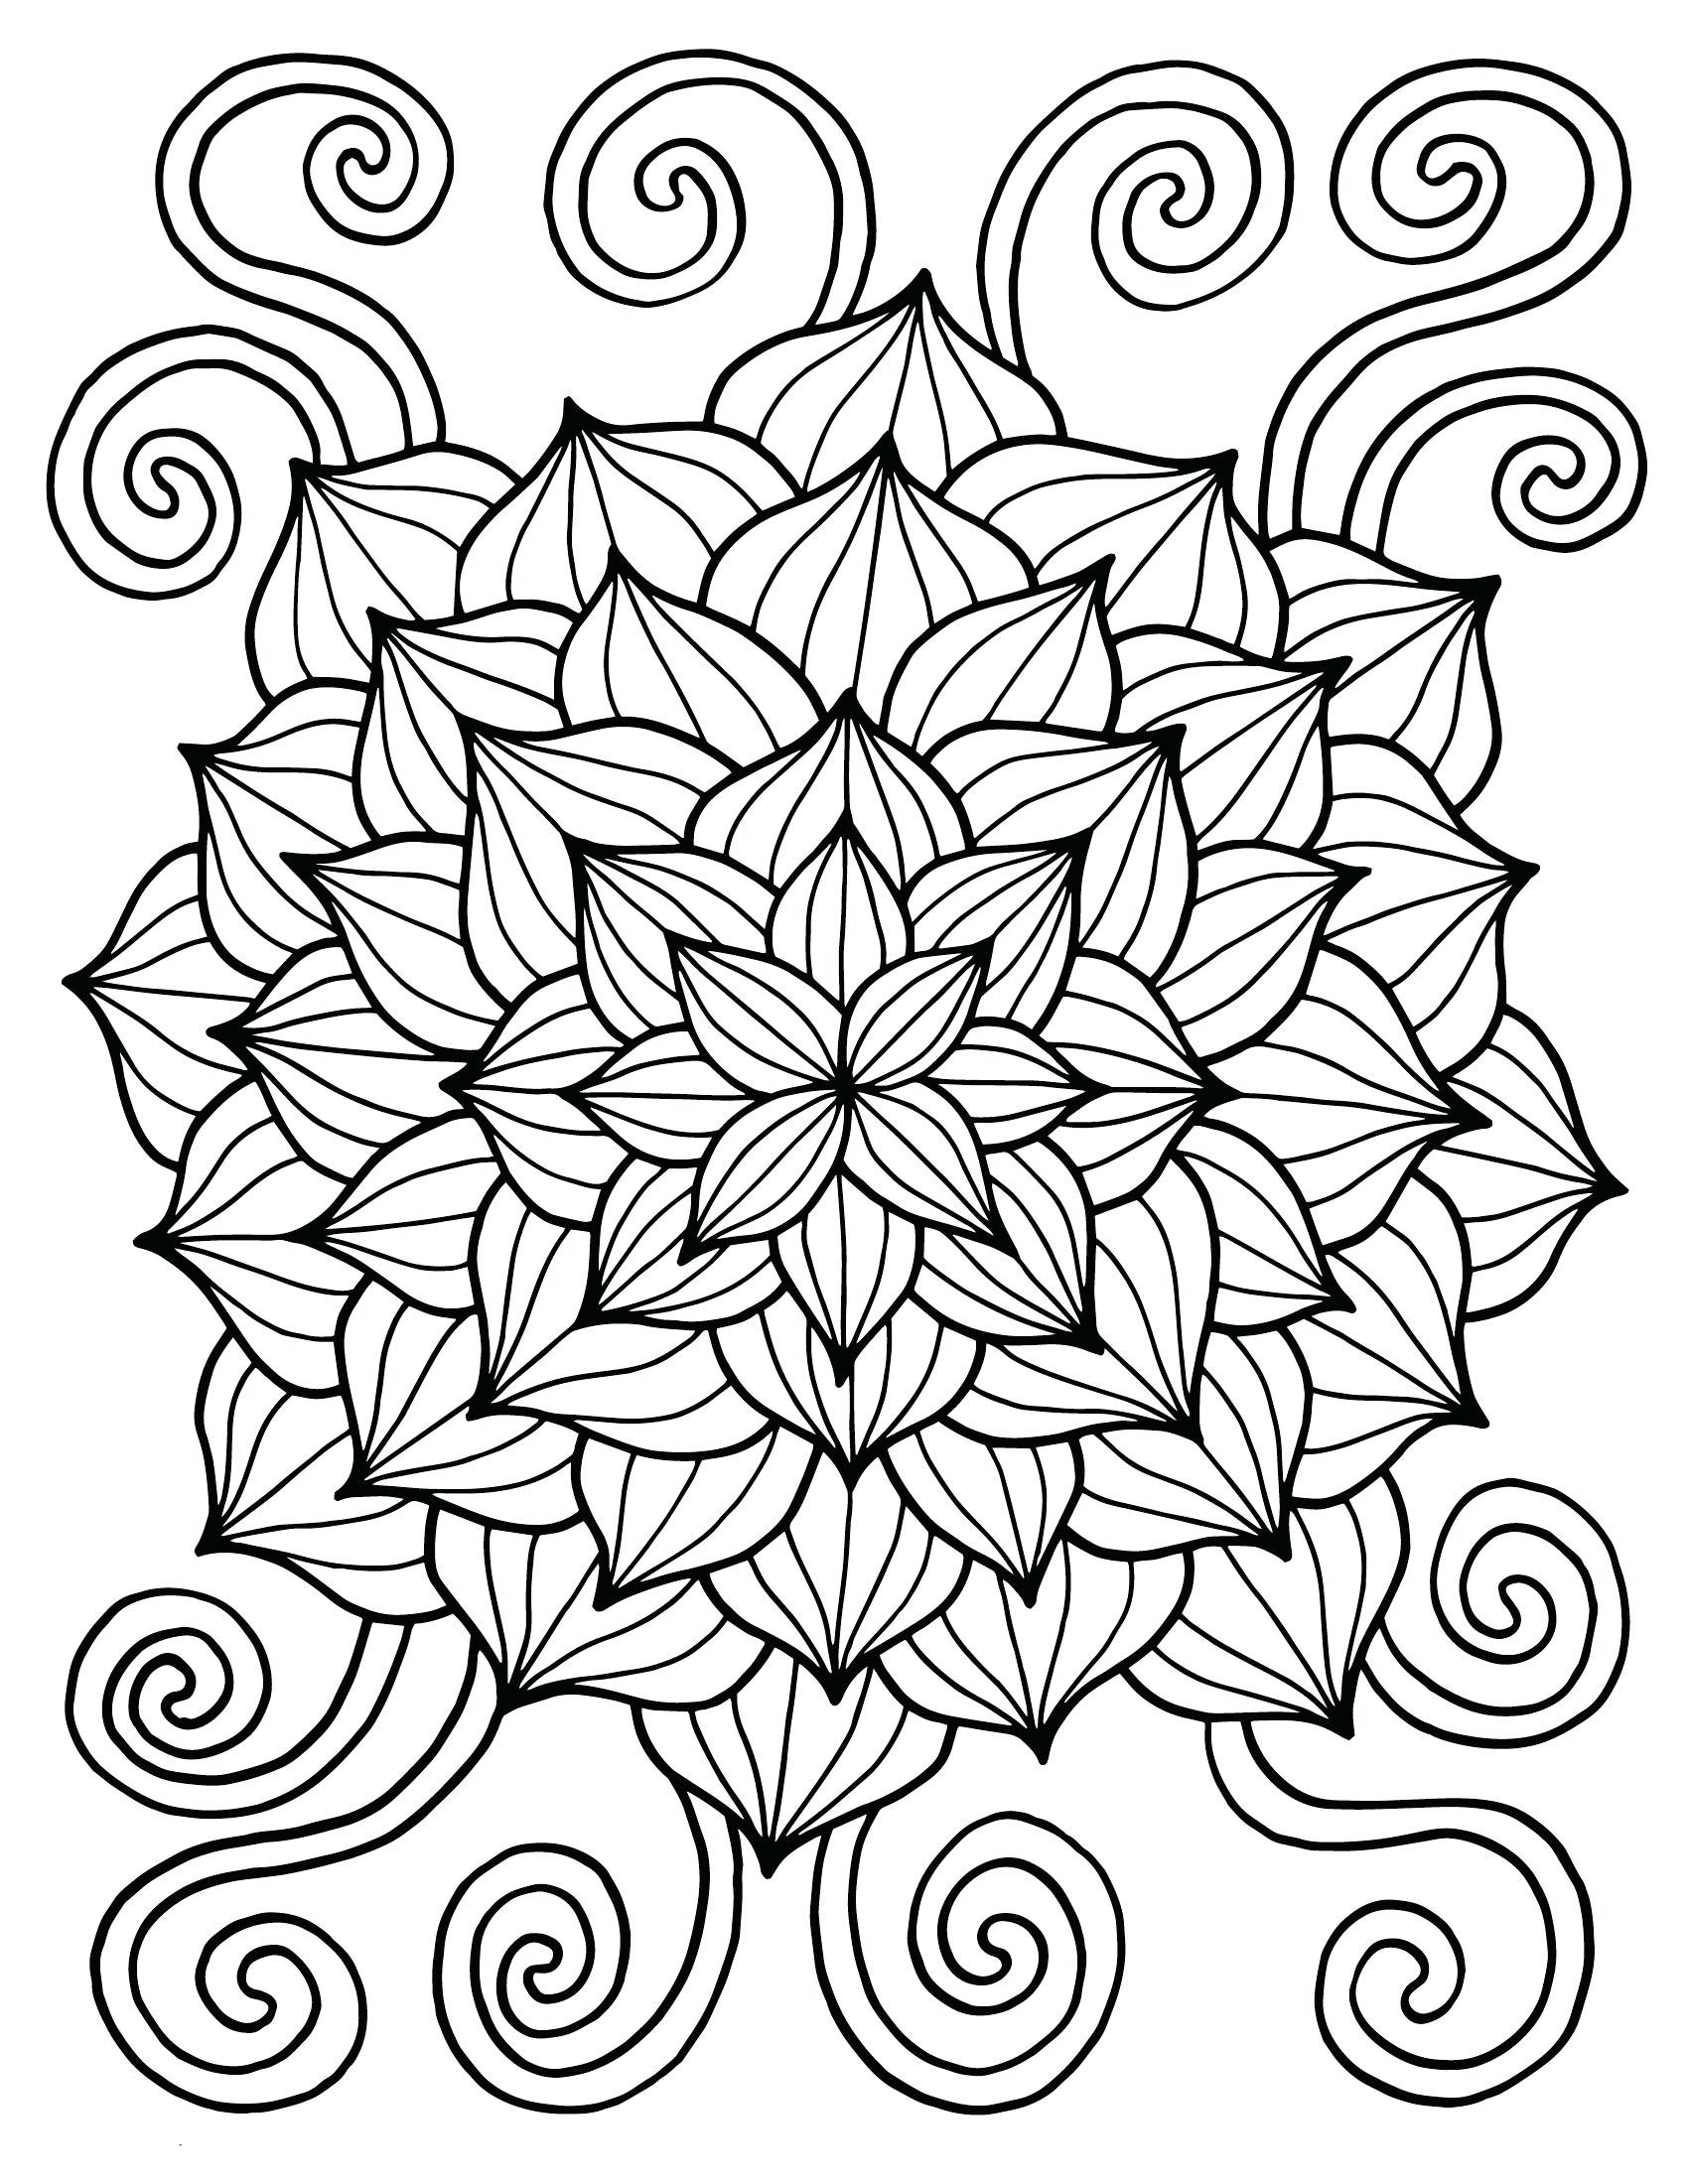 Free Flower Coloring Pages For Kids  Spring Coloring Pages Best Coloring Pages For Kids